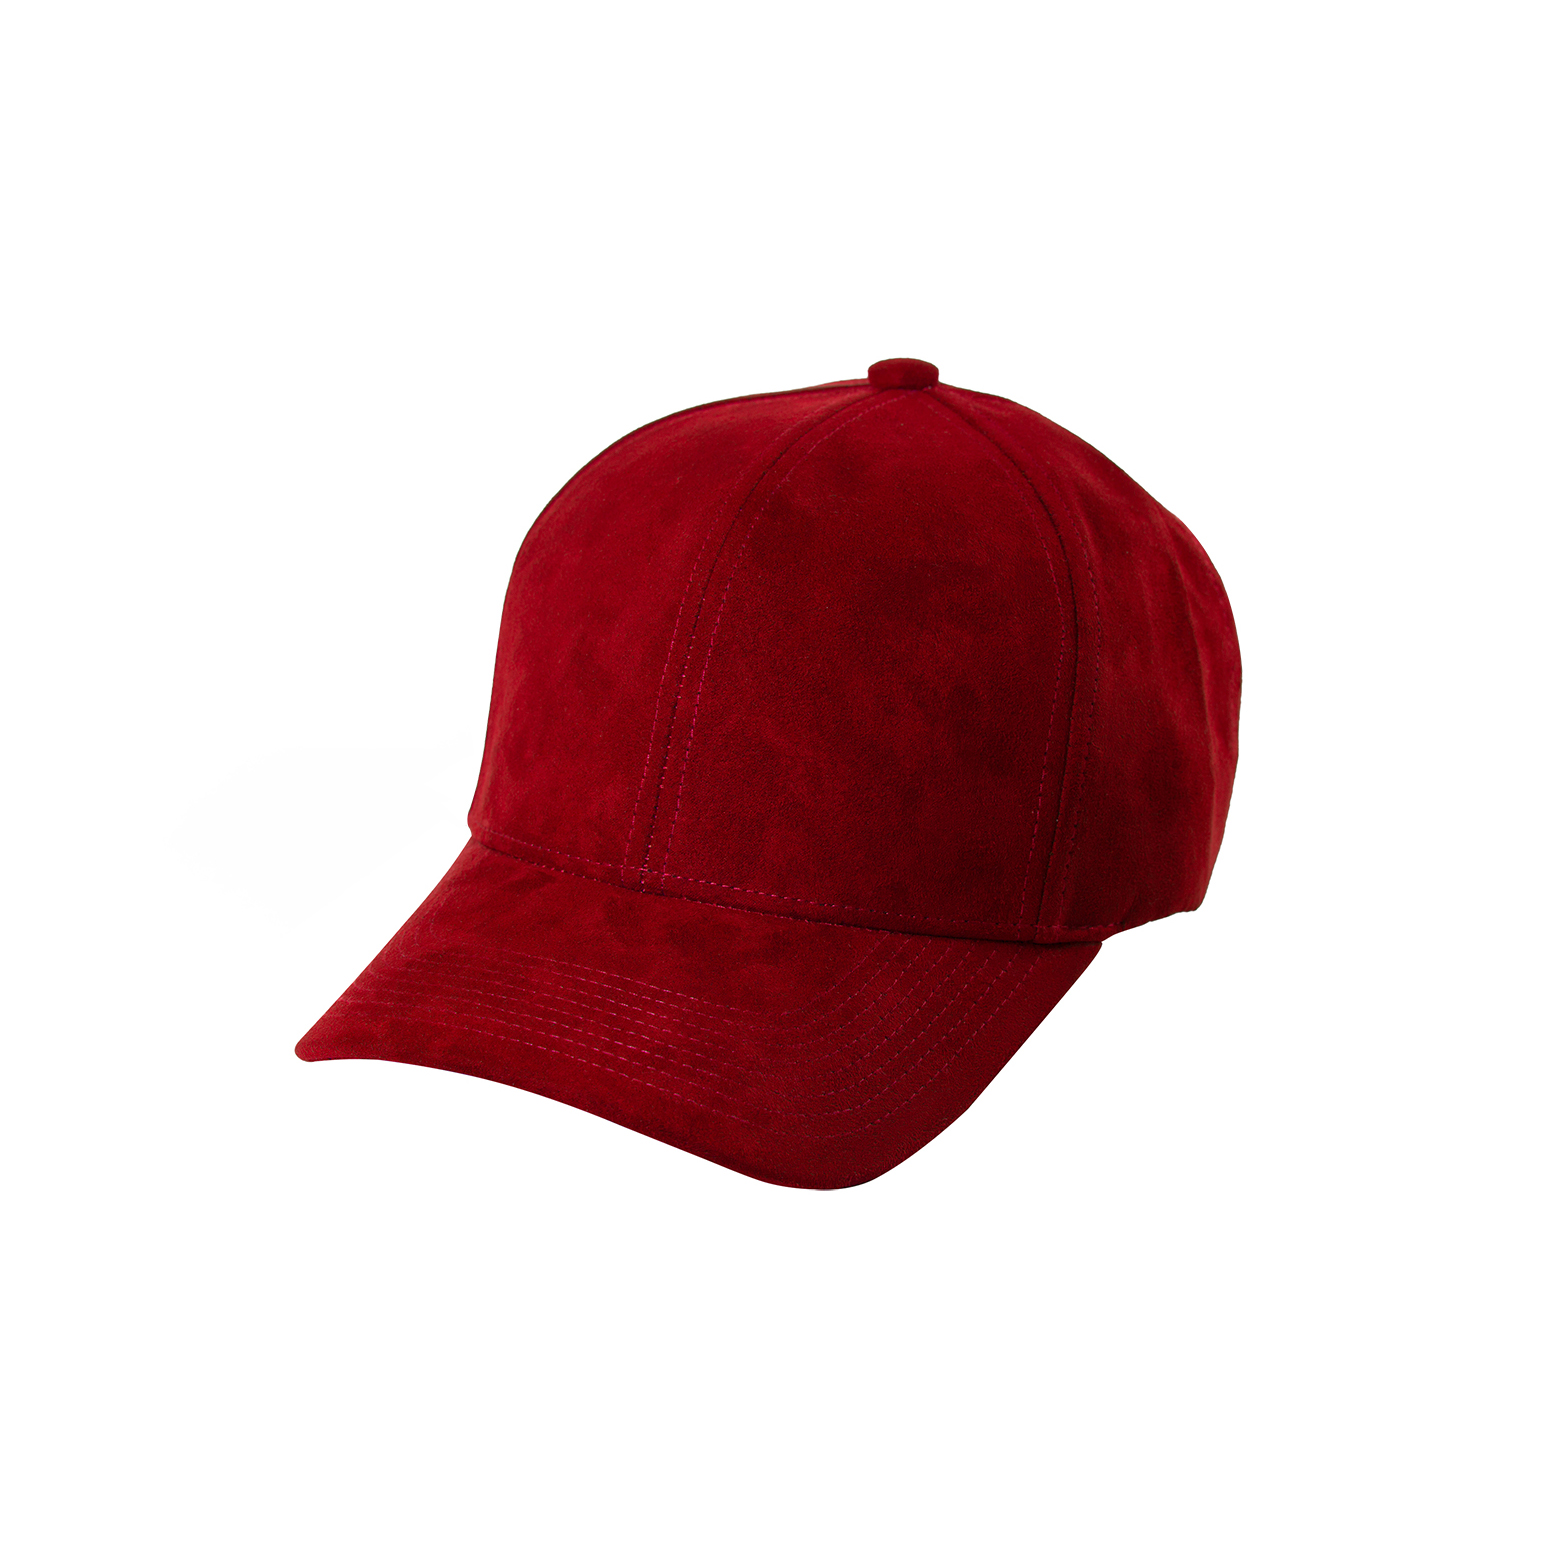 BASEBALL CAP RED SUEDE FRONT SIDE